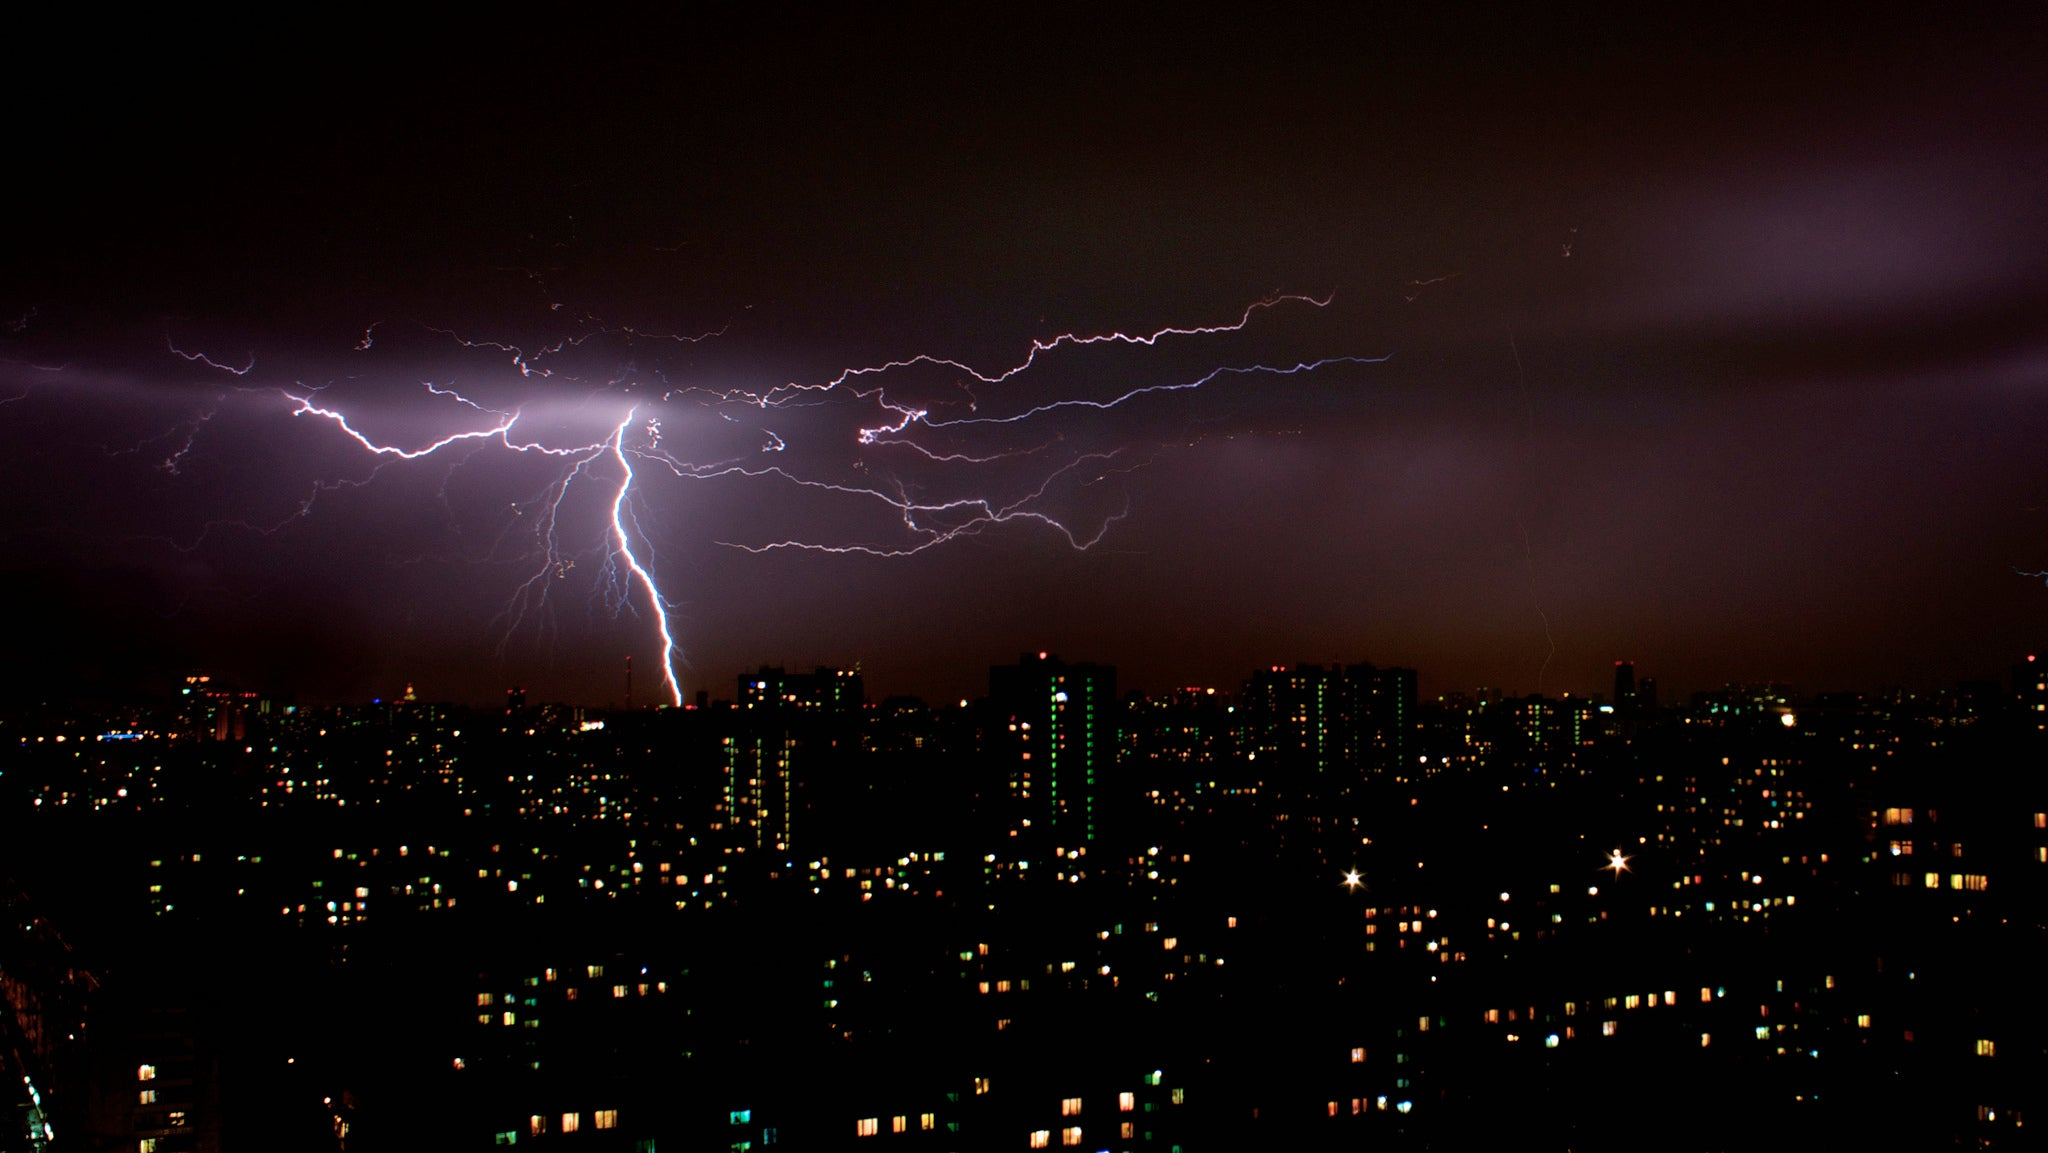 Confirmed: Lightning Causes Nuclear Reactions In The Sky